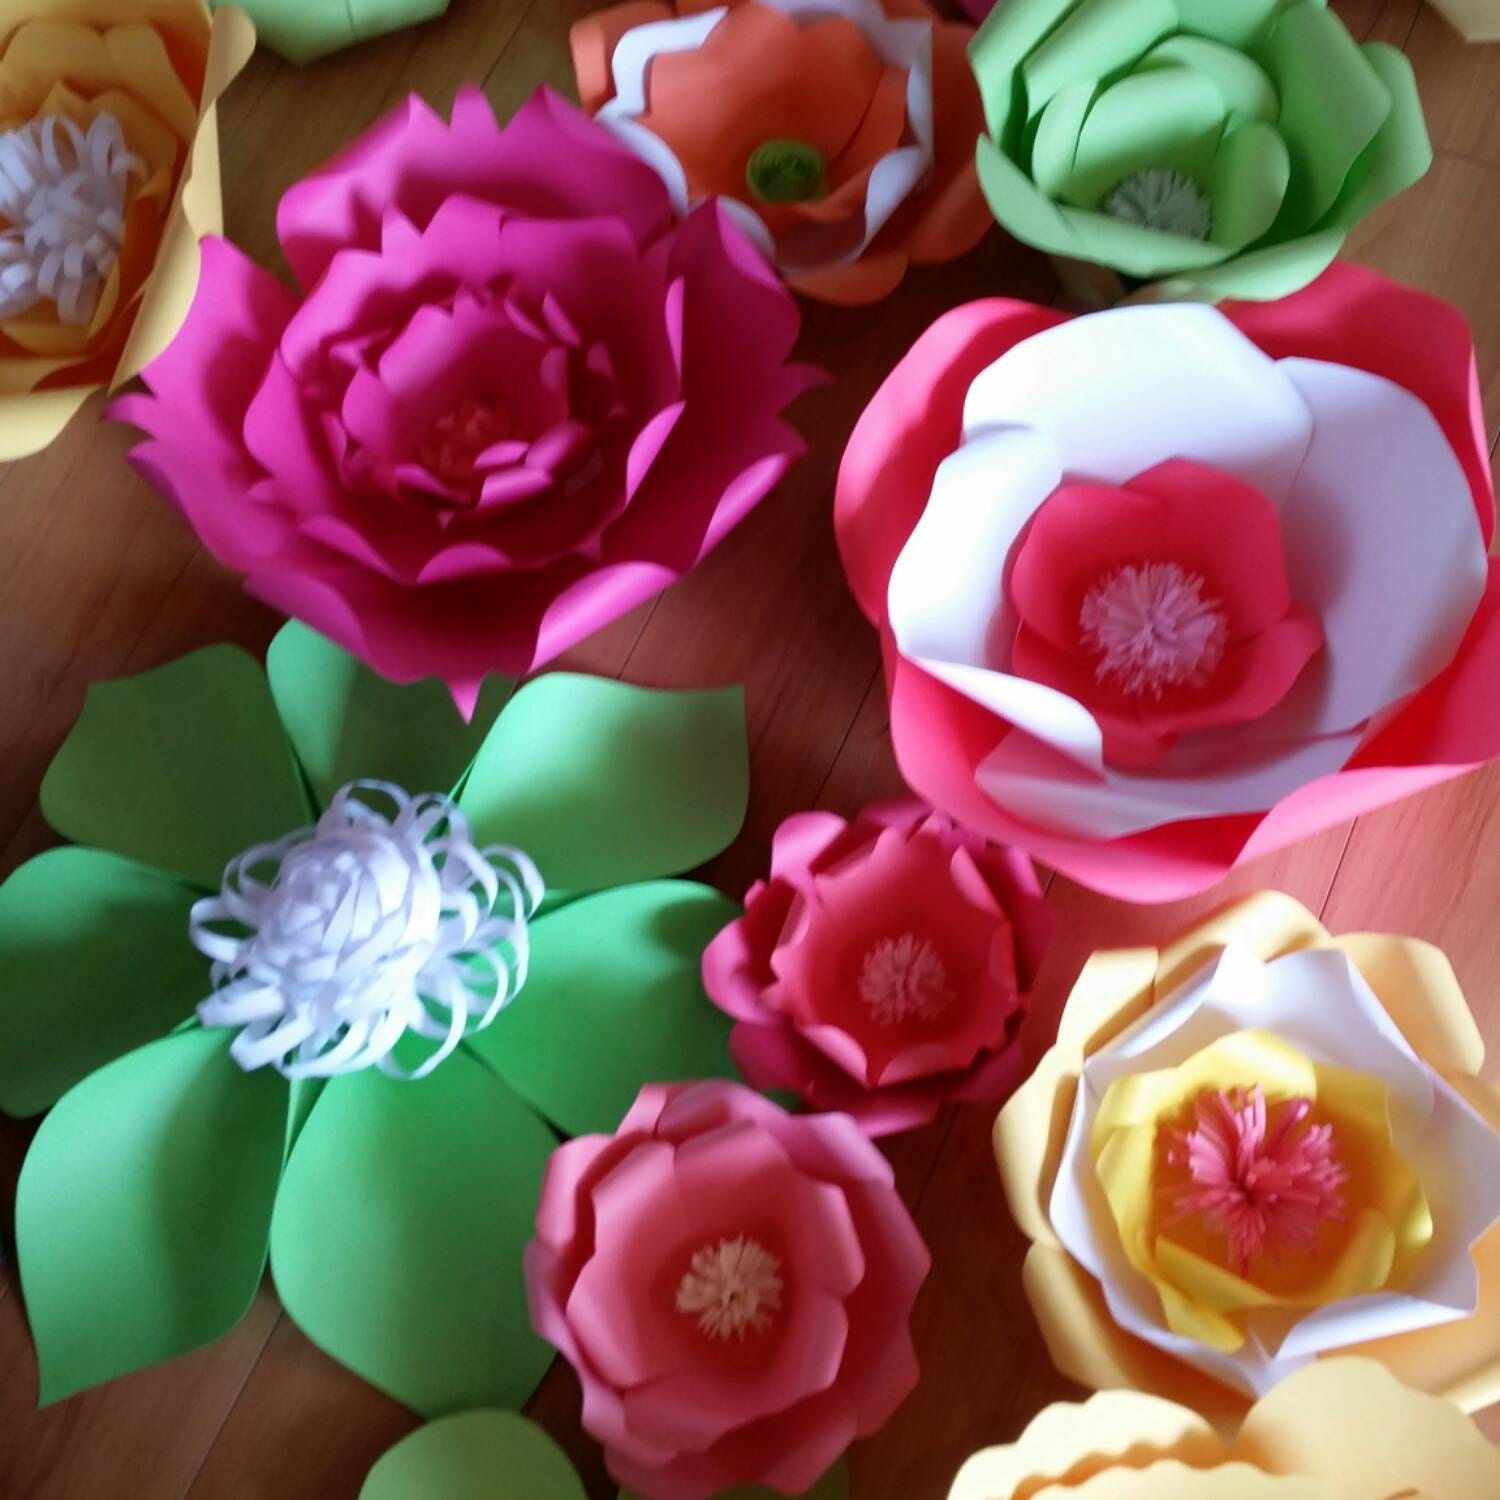 Mixed colors extra large paper flowers wall backdrop great for 12098 dhlflorist Choice Image